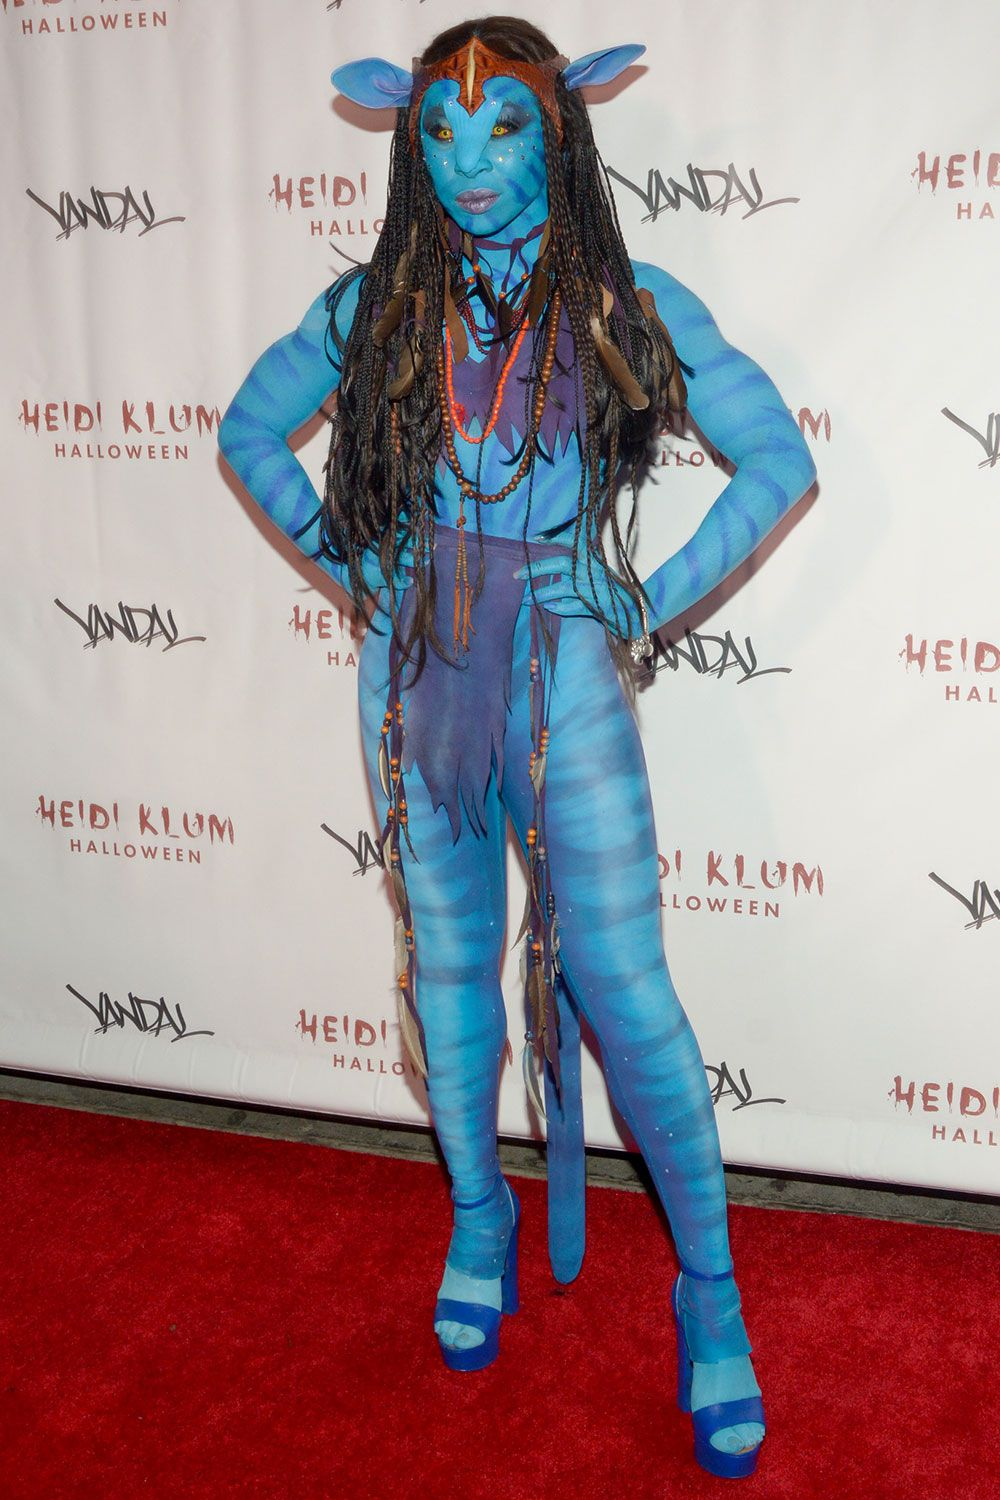 6 Best Halloween Costumes of All Time - Top Costume Ideas Ever